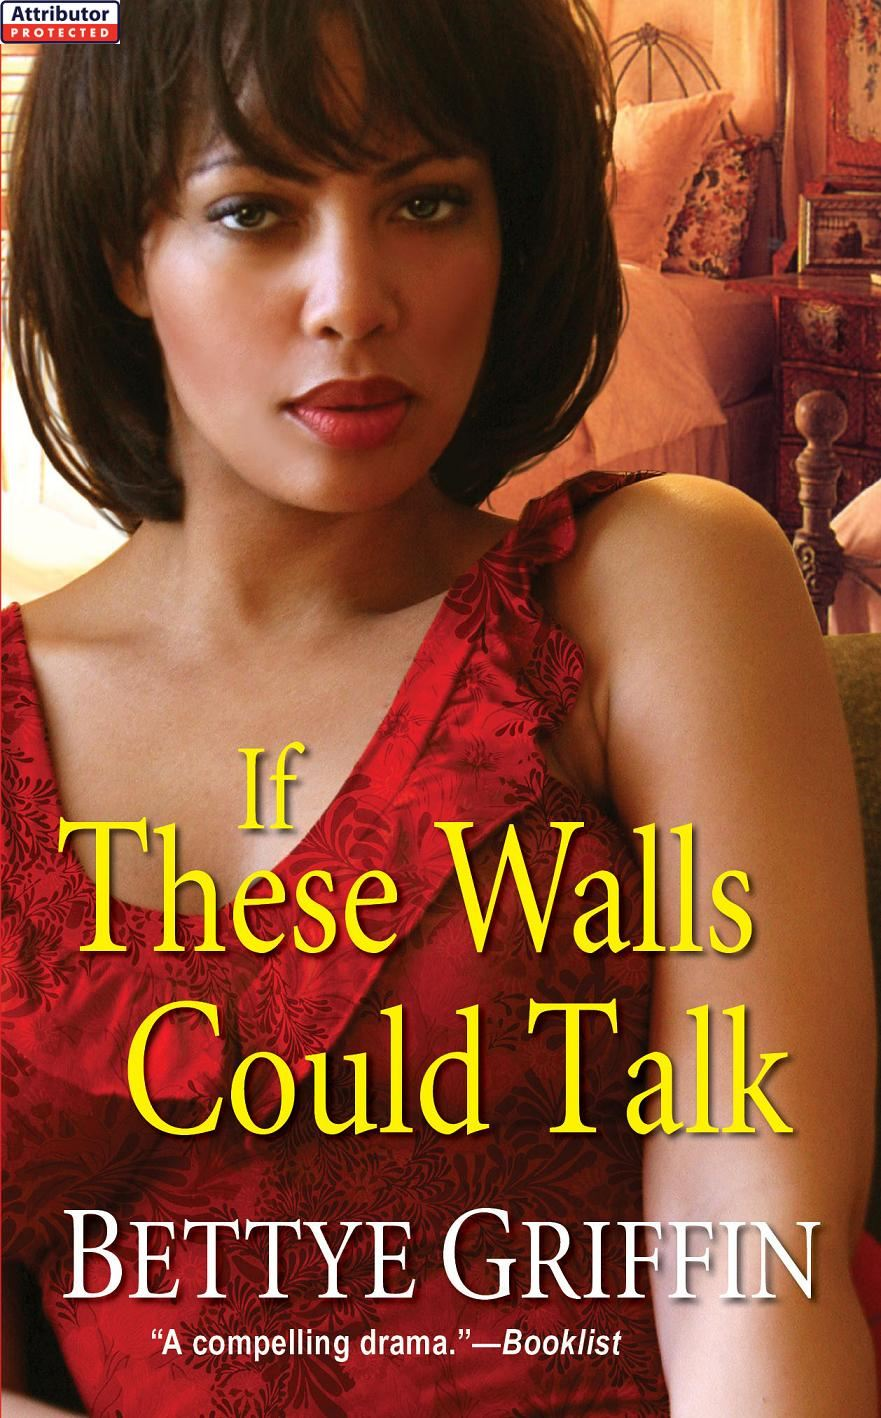 If These Walls Could Talk By: Bettye Griffin